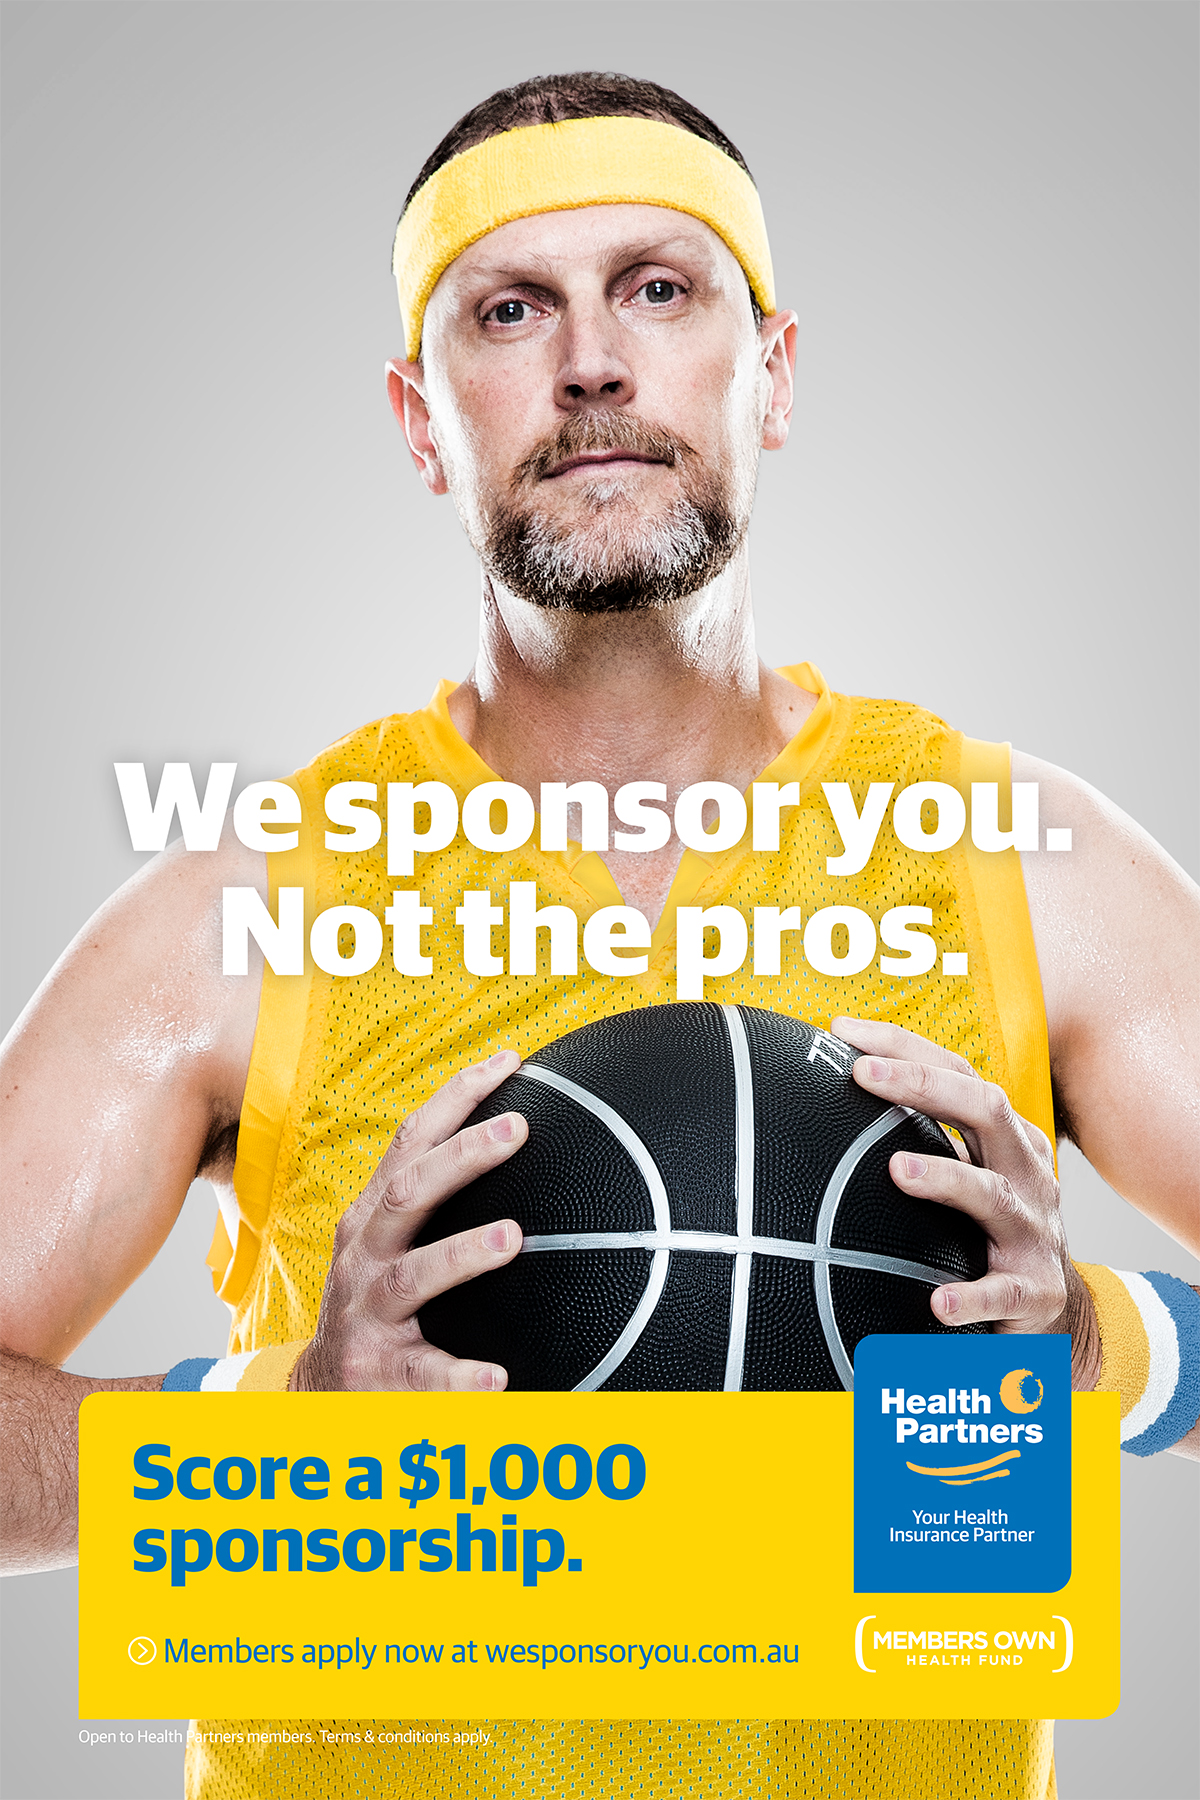 campaign-thom-rigney-professional-photographer-advertising-commissioned-australia-melbourne-099